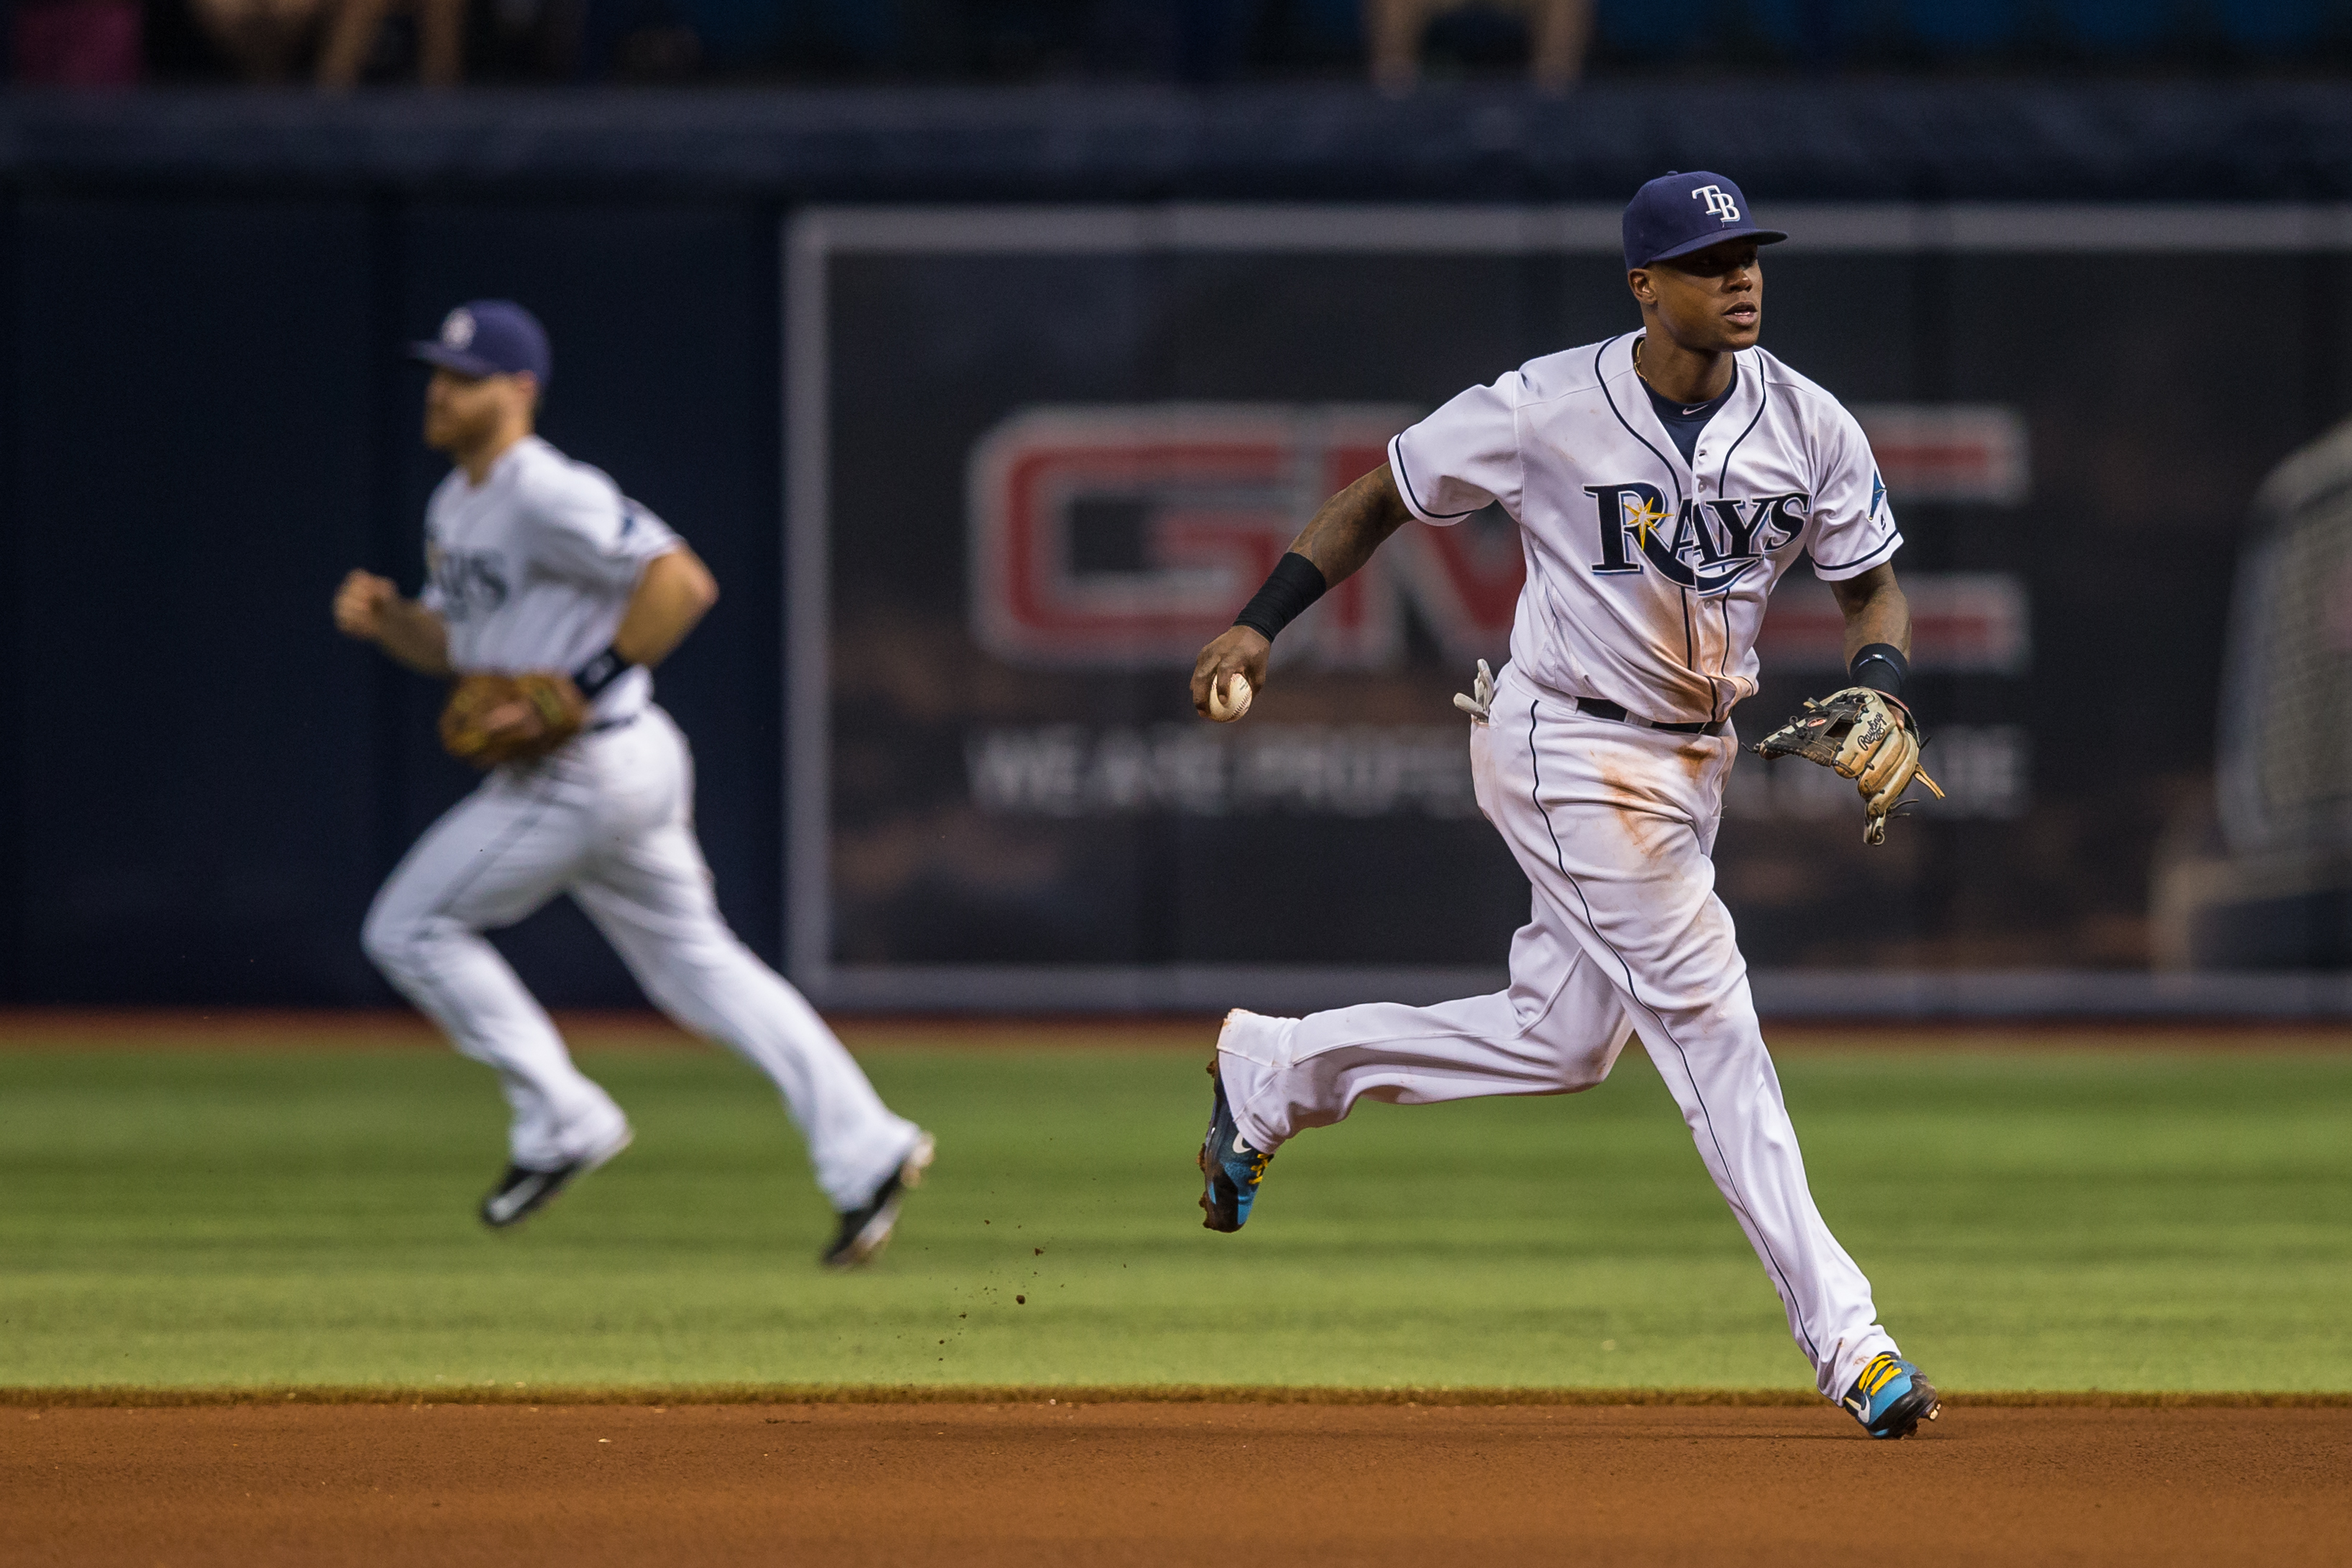 Tim Beckham fields a ground ball at short./TRAVIS PENDERGRASS